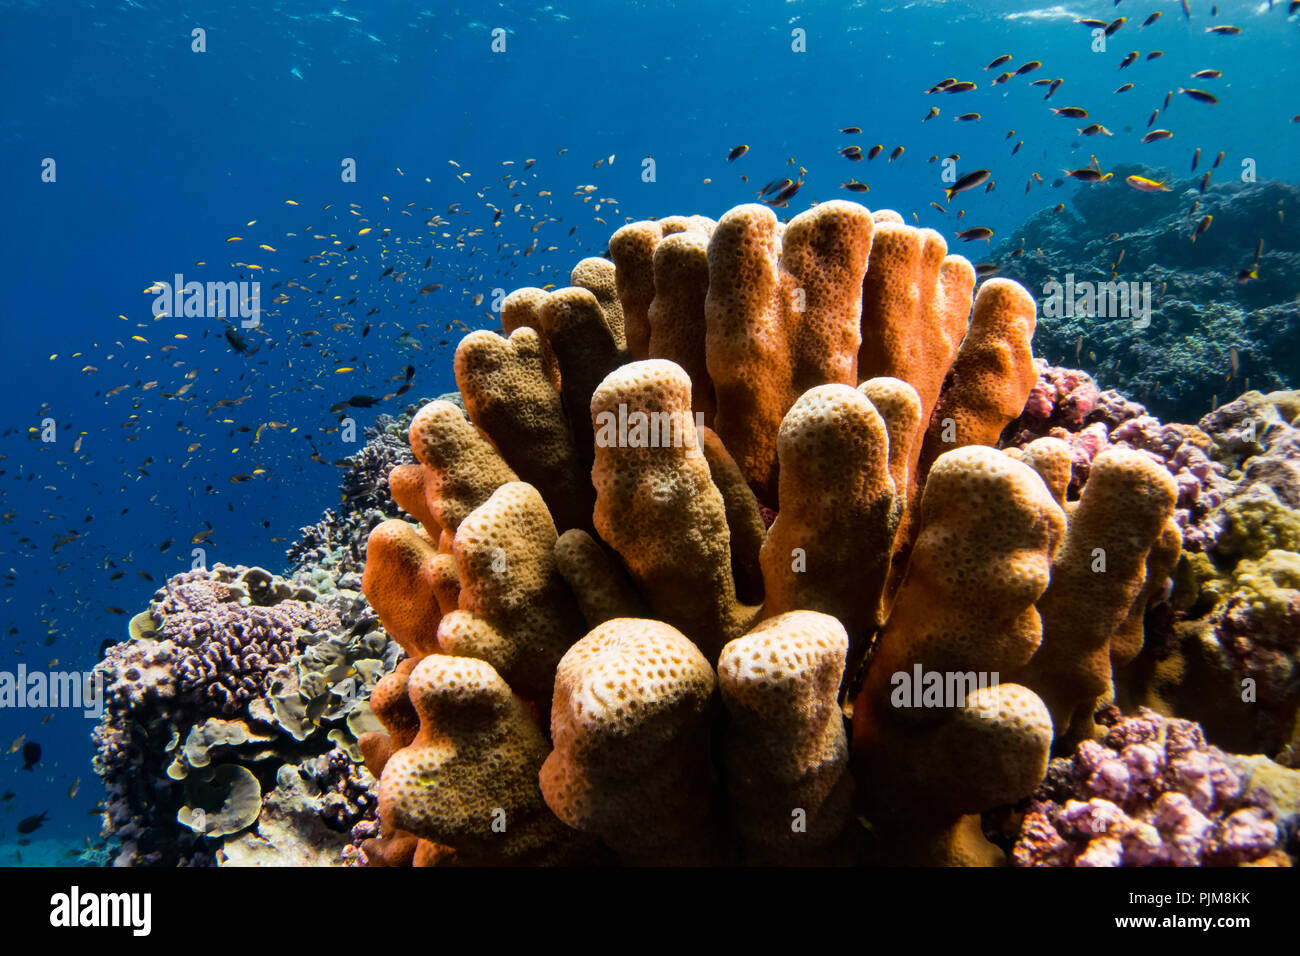 Diving on the reef of Millennium atoll in Kiribati showing the dead coral from coral bleaching due to climate change. - Stock Image